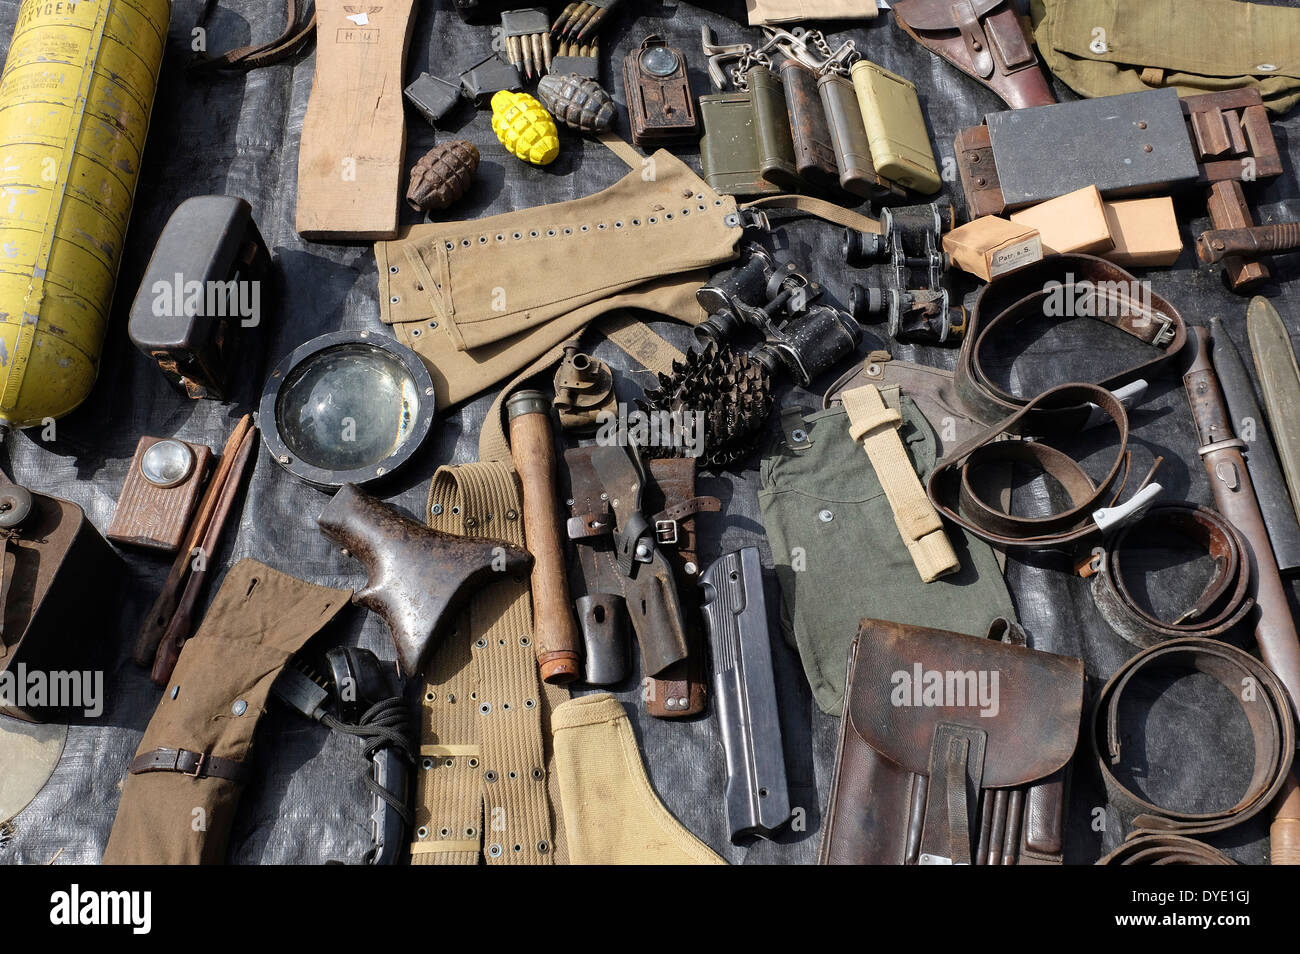 military memorabilia on market stall, normandy, france - Stock Image